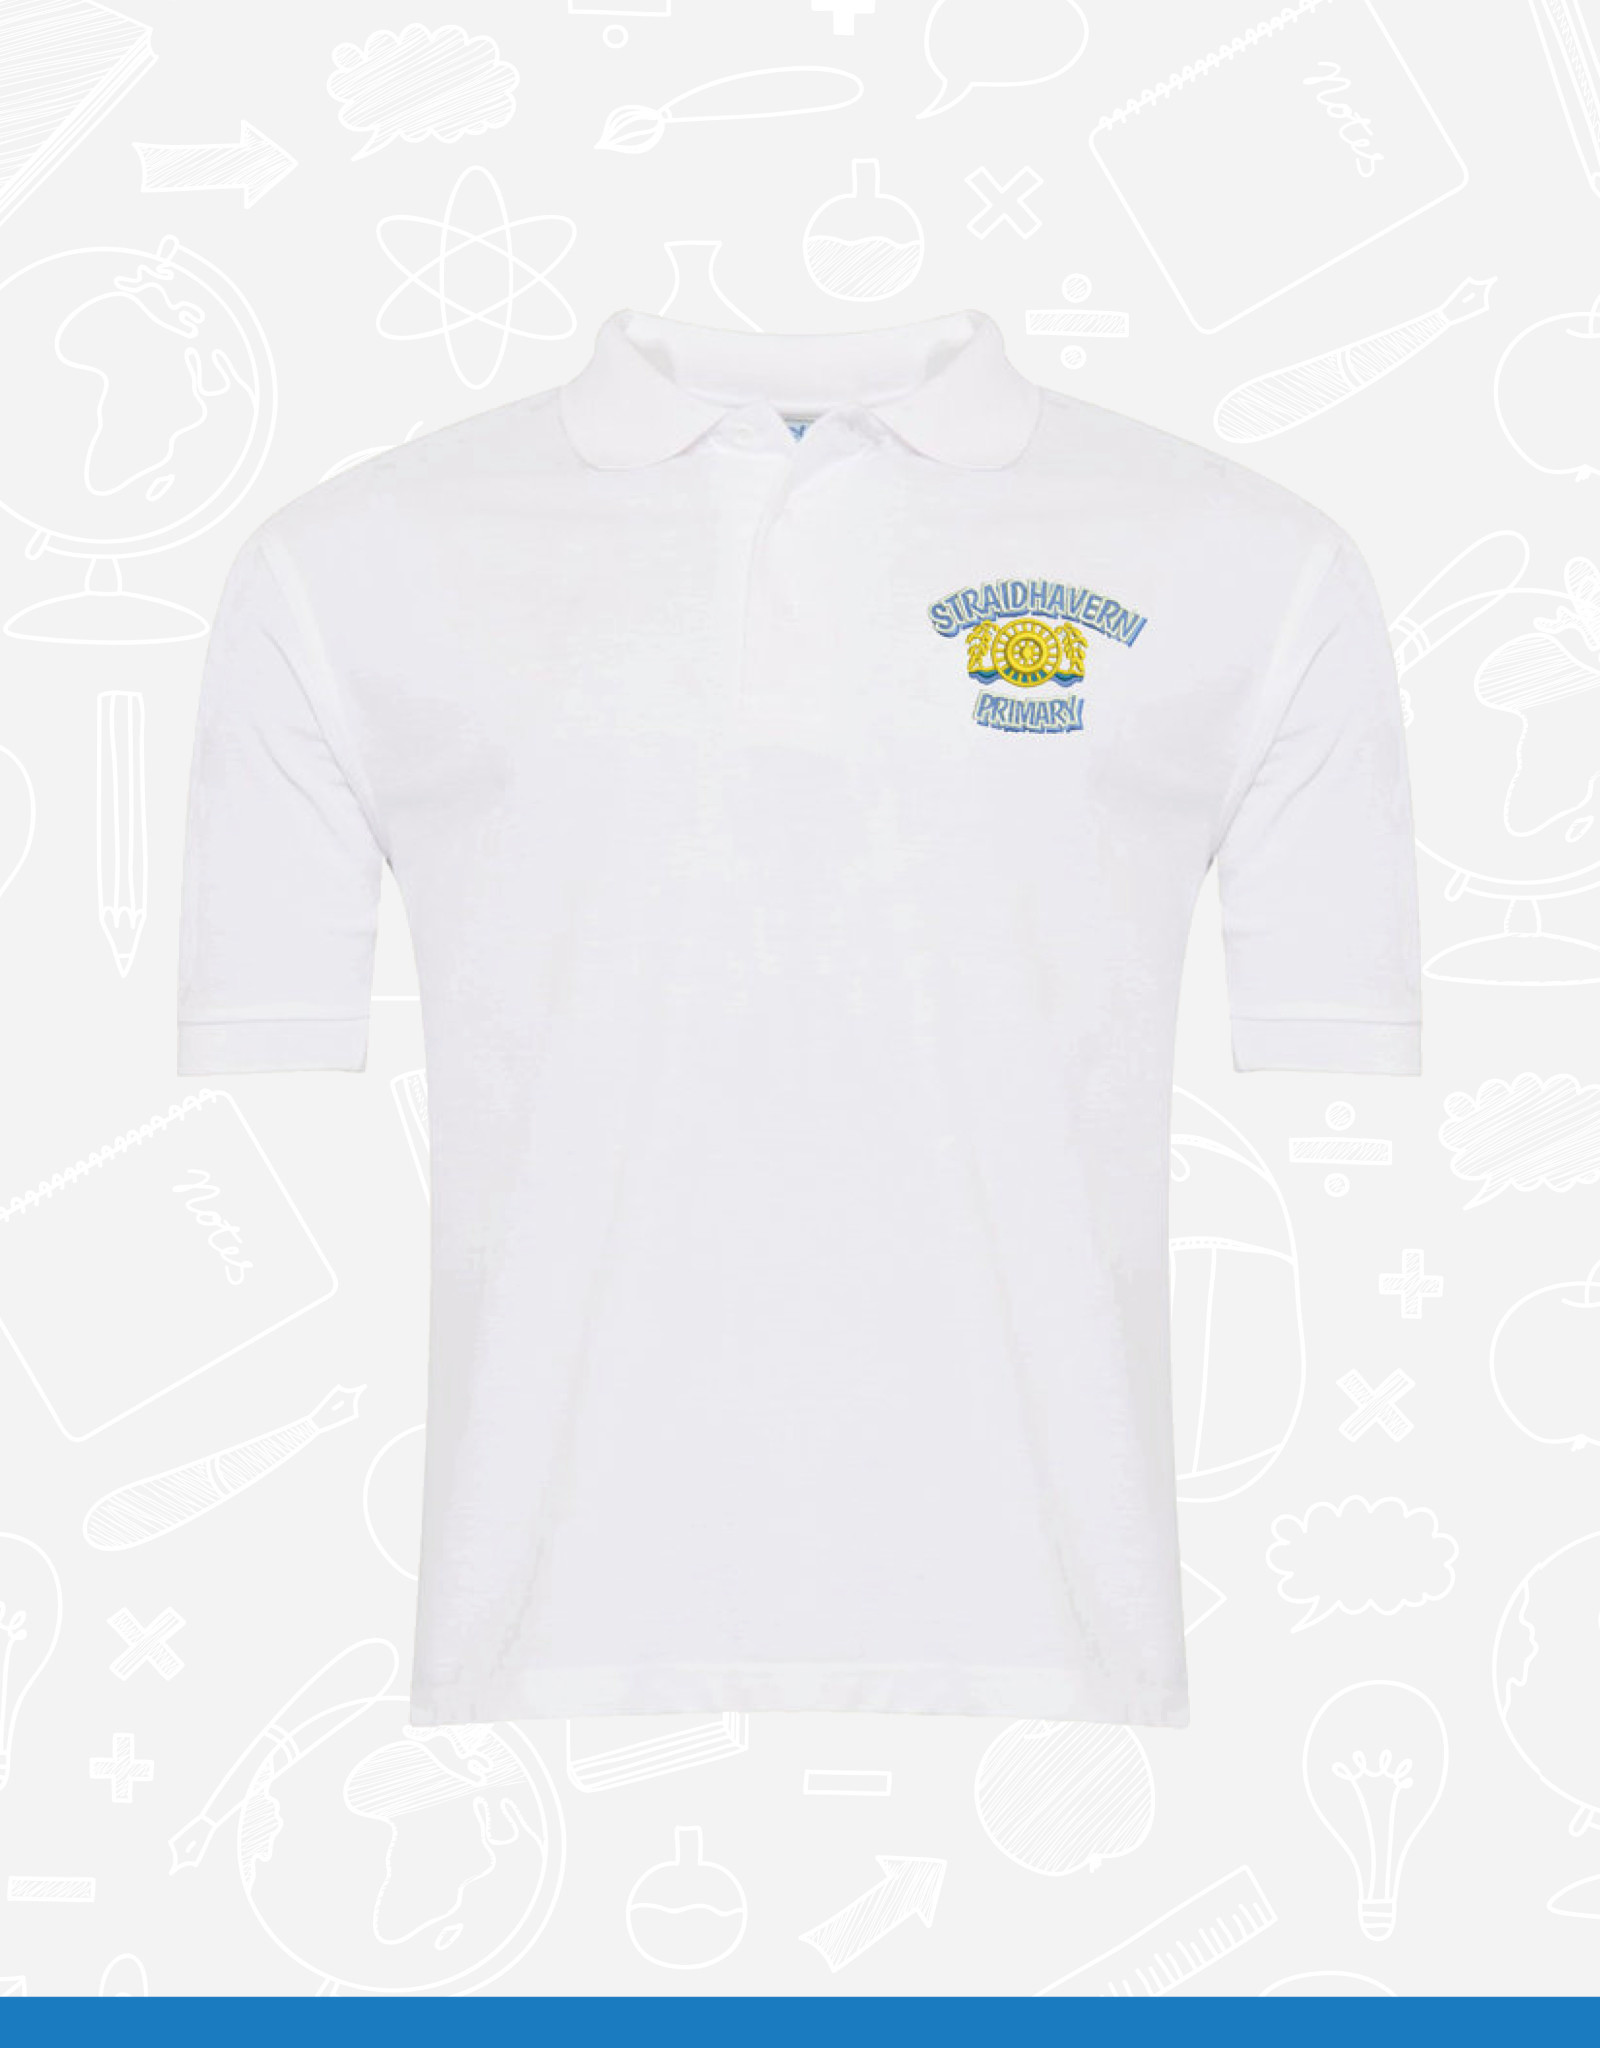 Banner Straidhavern Primary PE Polo Shirt (3PP)